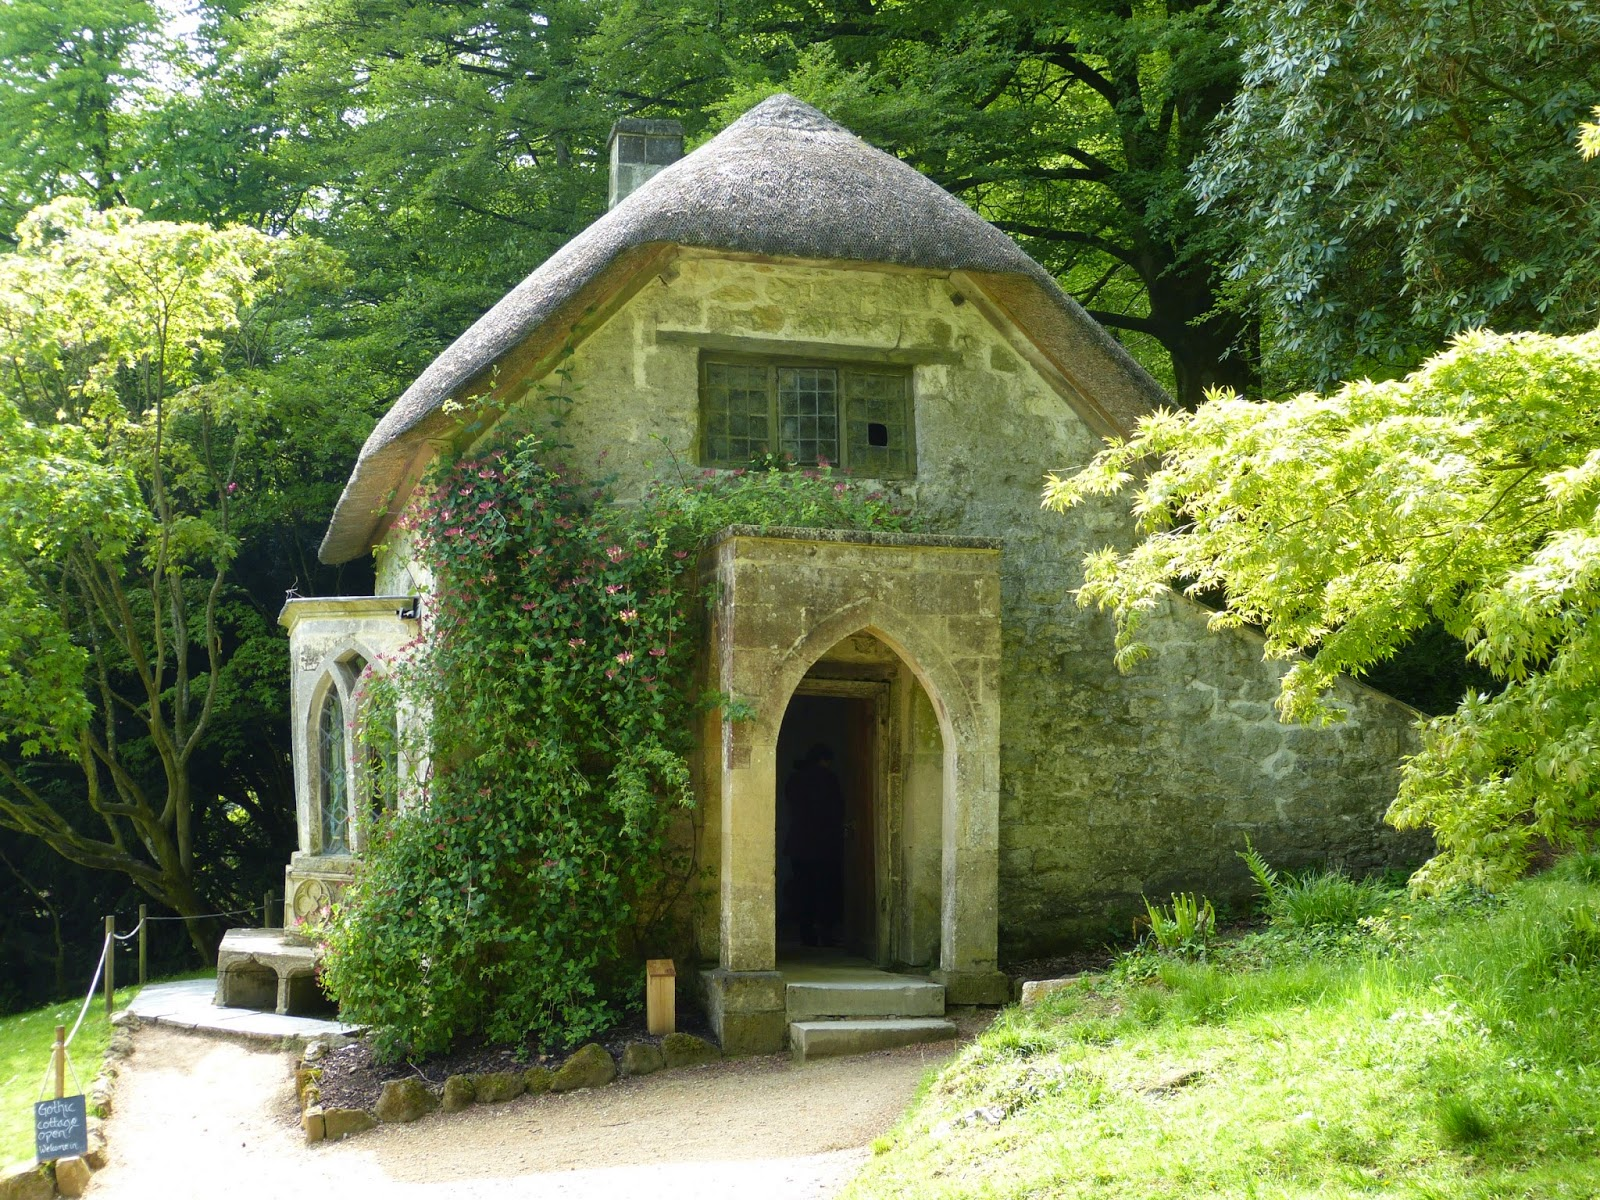 The Gothic Cottage, Stourhead